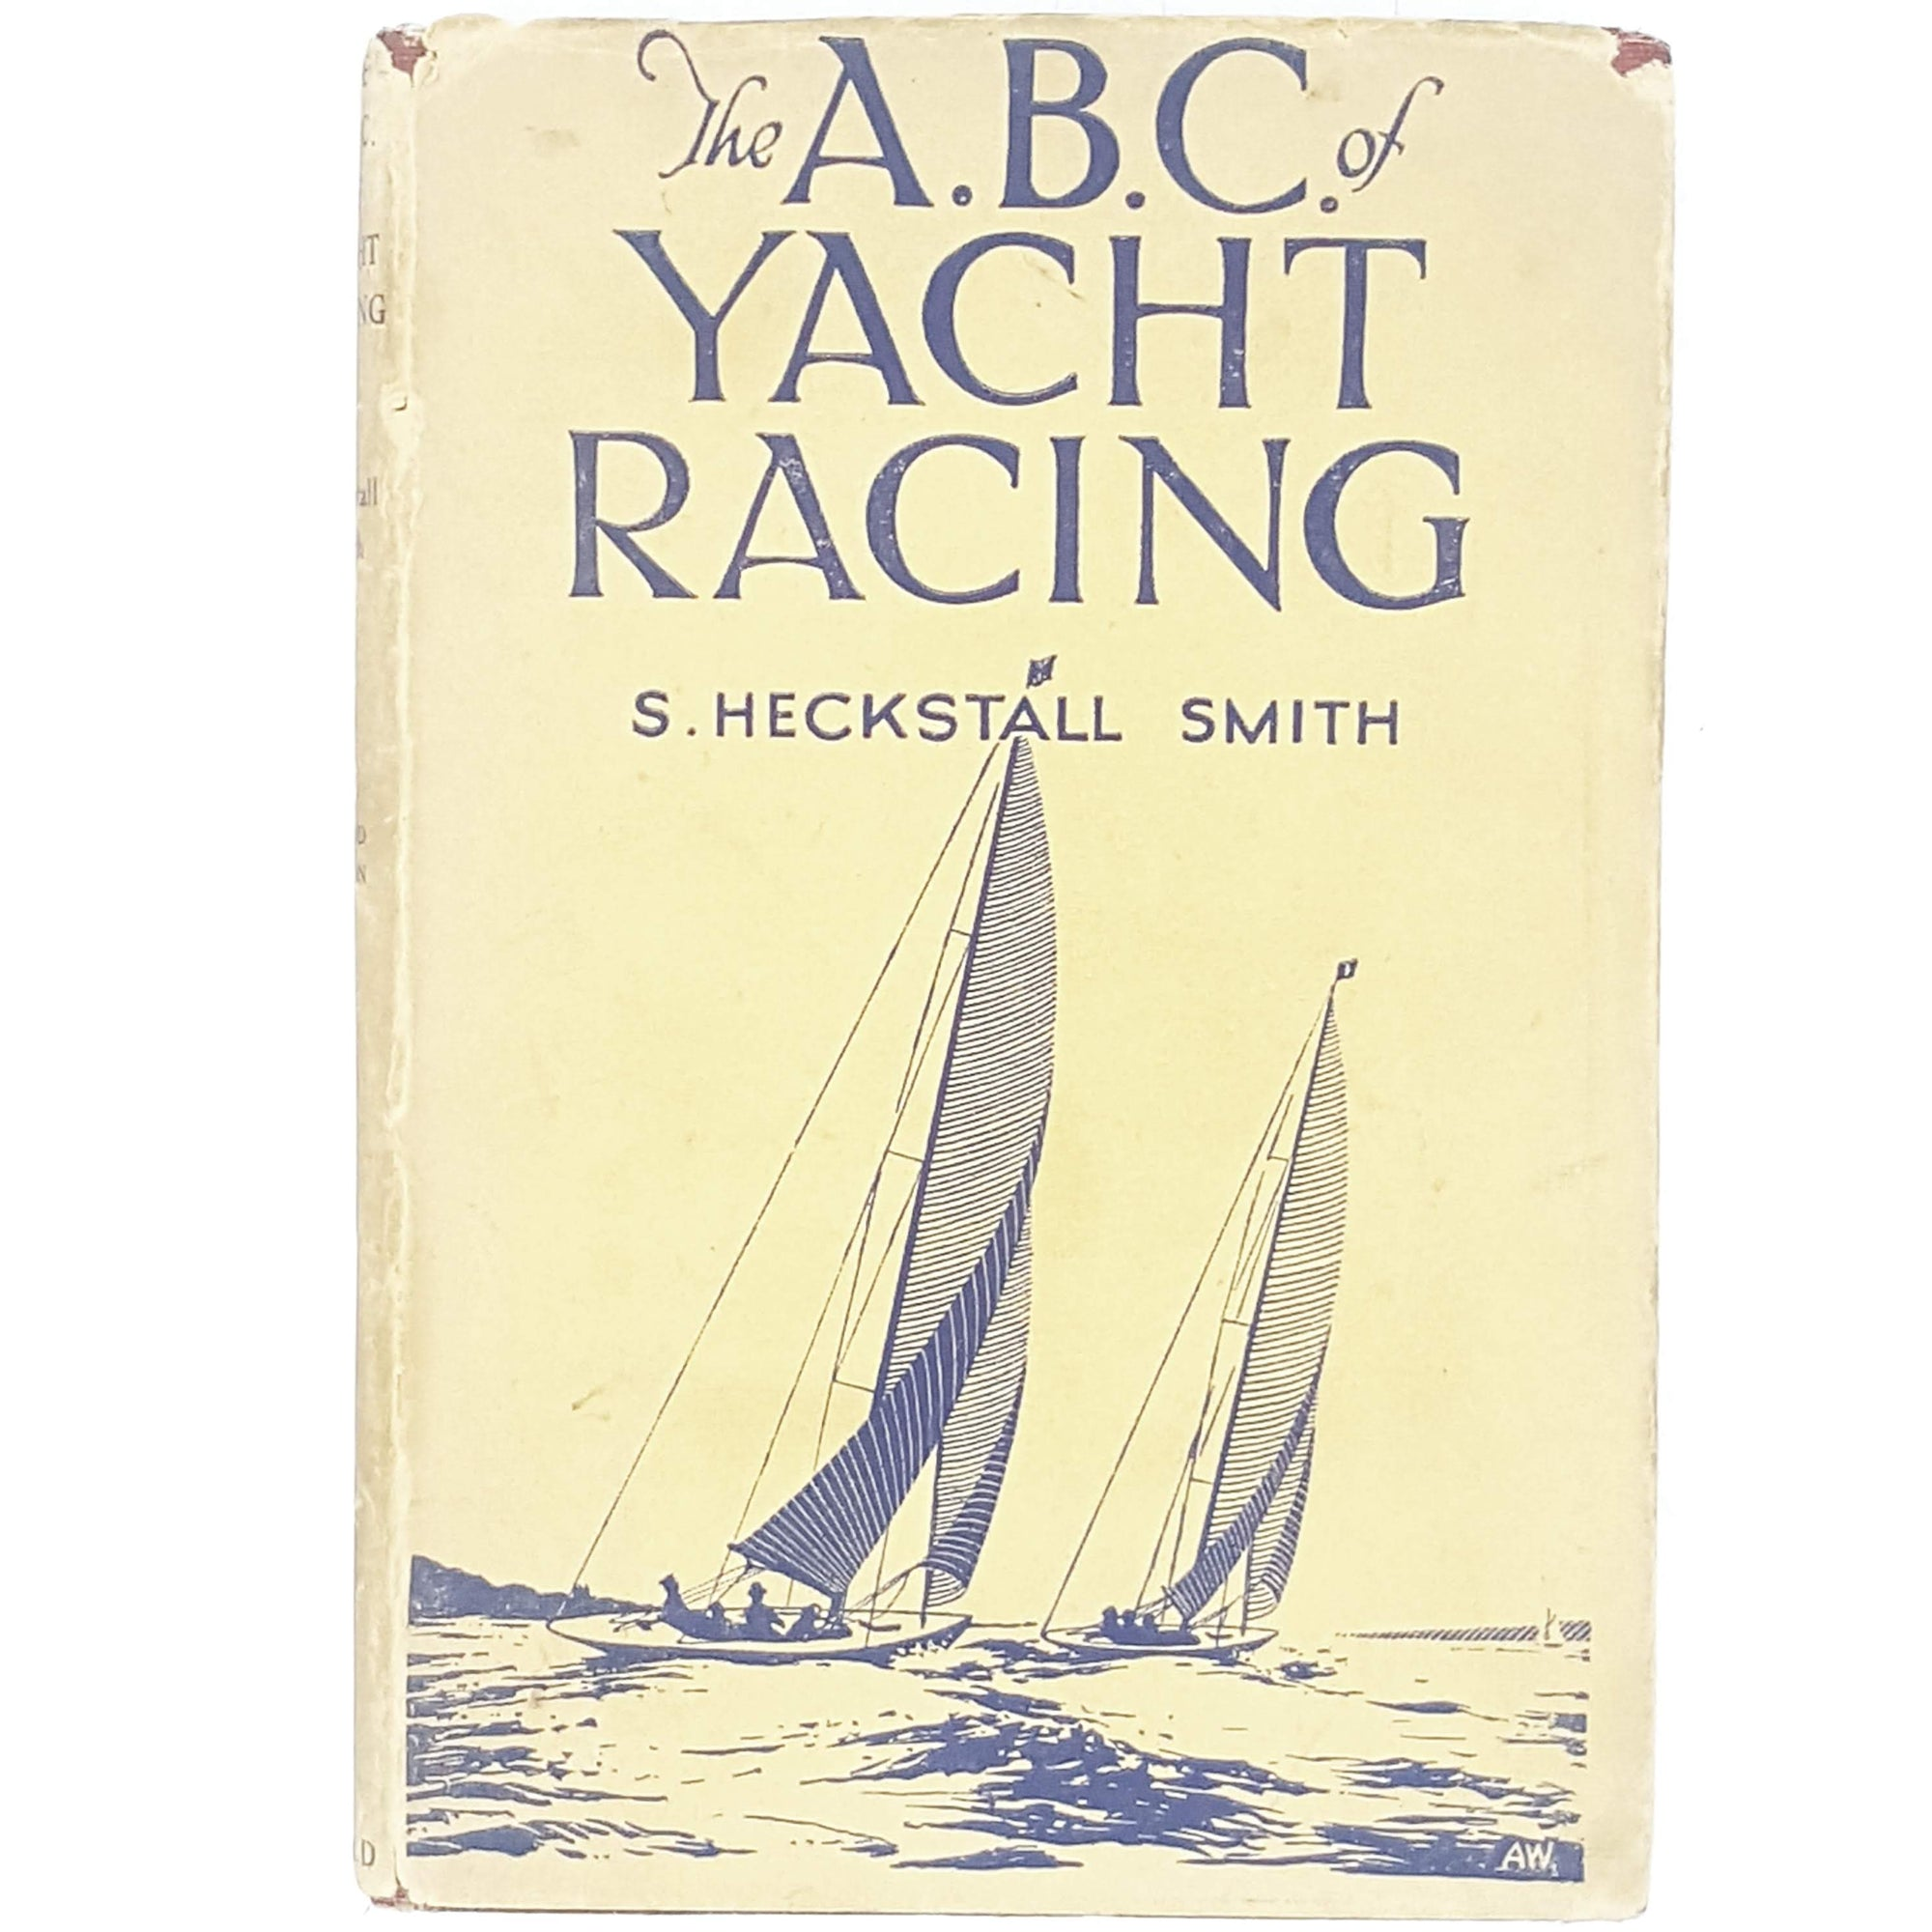 Illustrated The ABC of Yacht Racing 1949